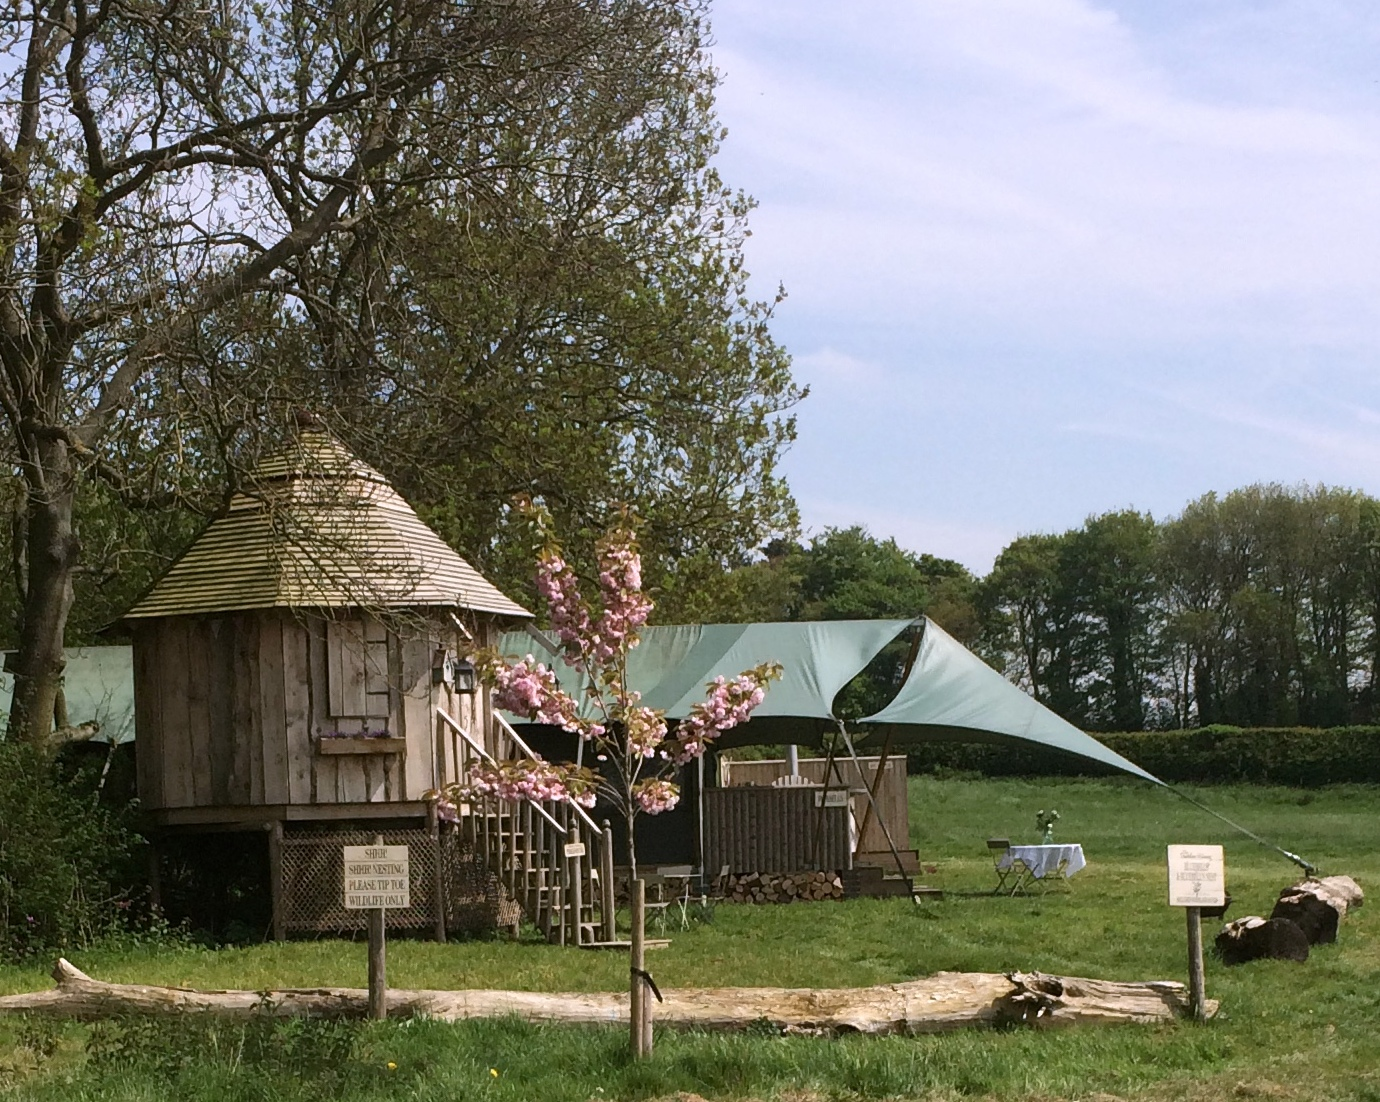 The Dandelion Hideaway glamping site with safari tents